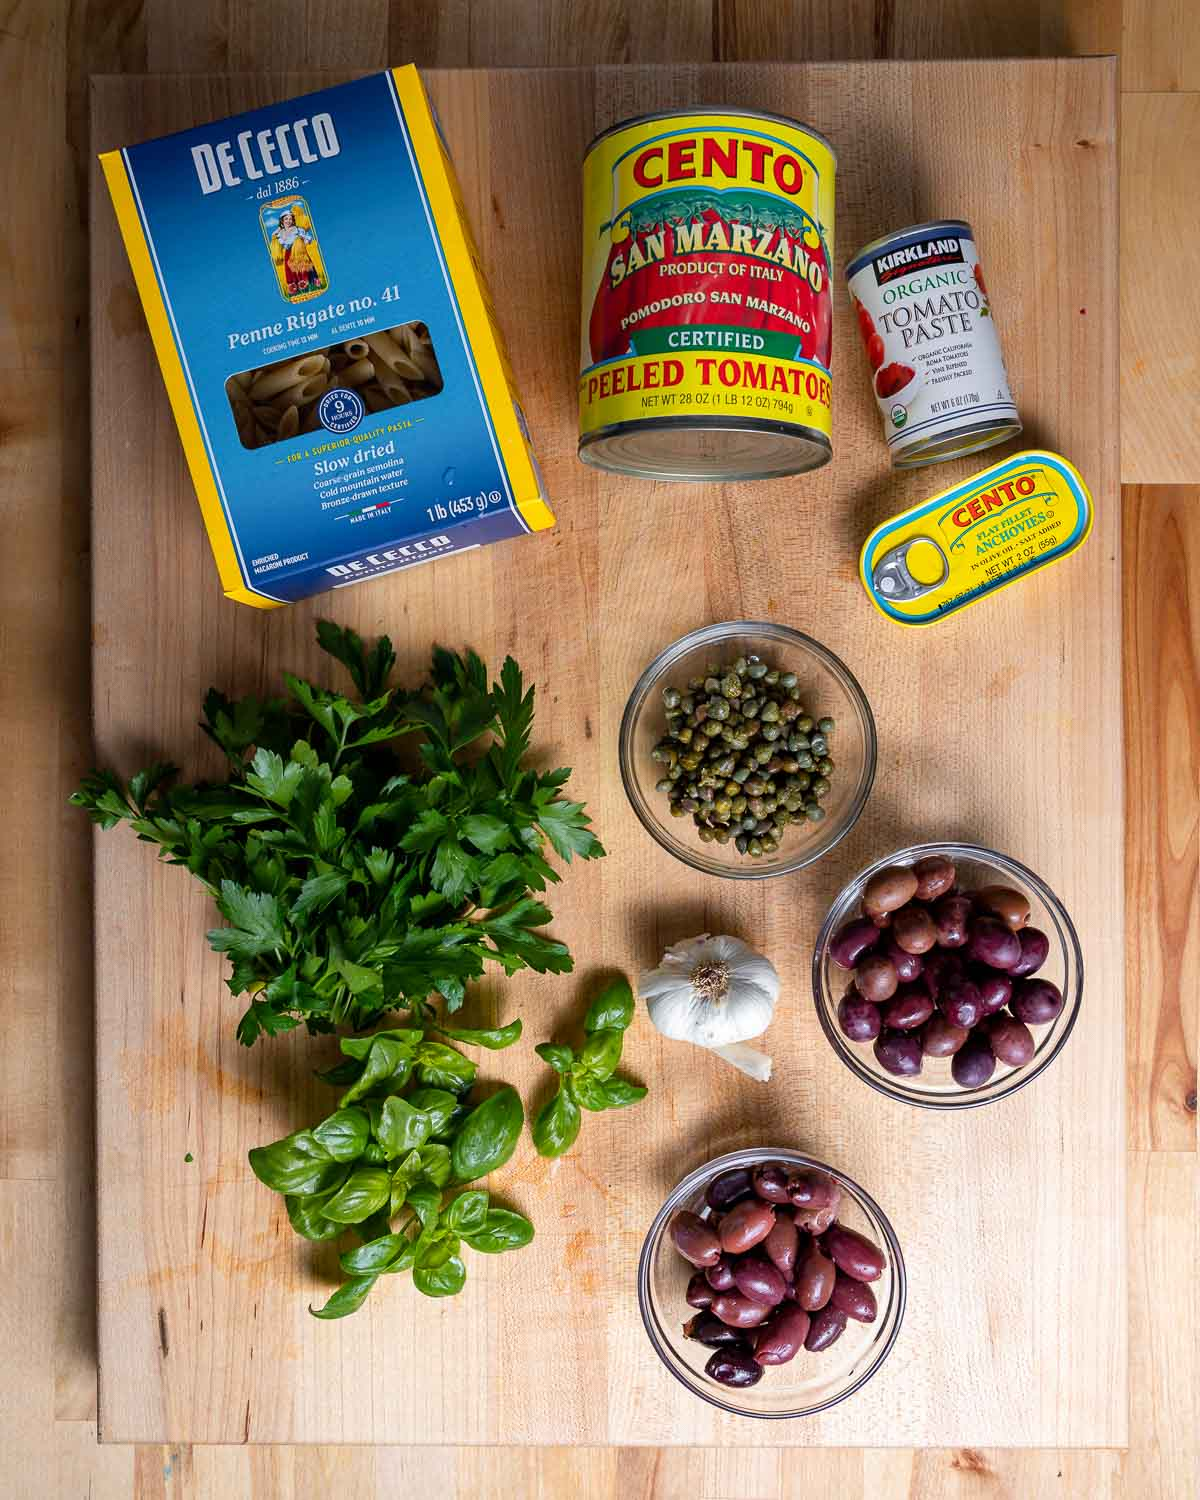 Ingredients shown: pasta, canned tomatoes, anchovies, capers, olives, garlic, herbs.